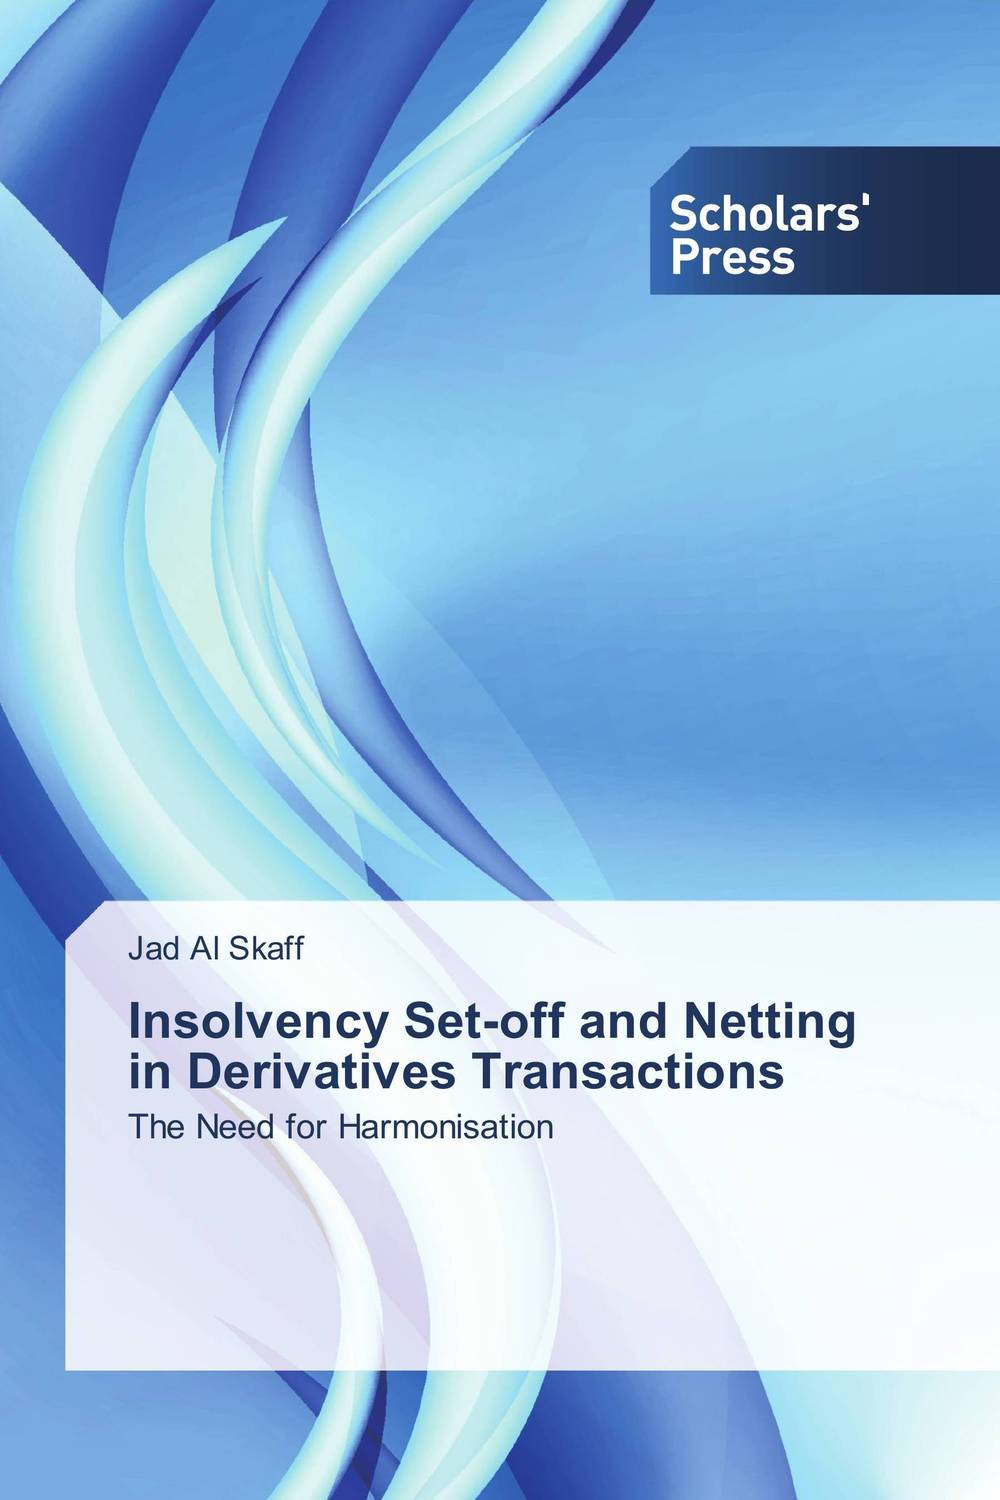 Insolvency Set-off and Netting in Derivatives Transactions marta tsvengrosh arbitration and insolvency conflict of laws issues